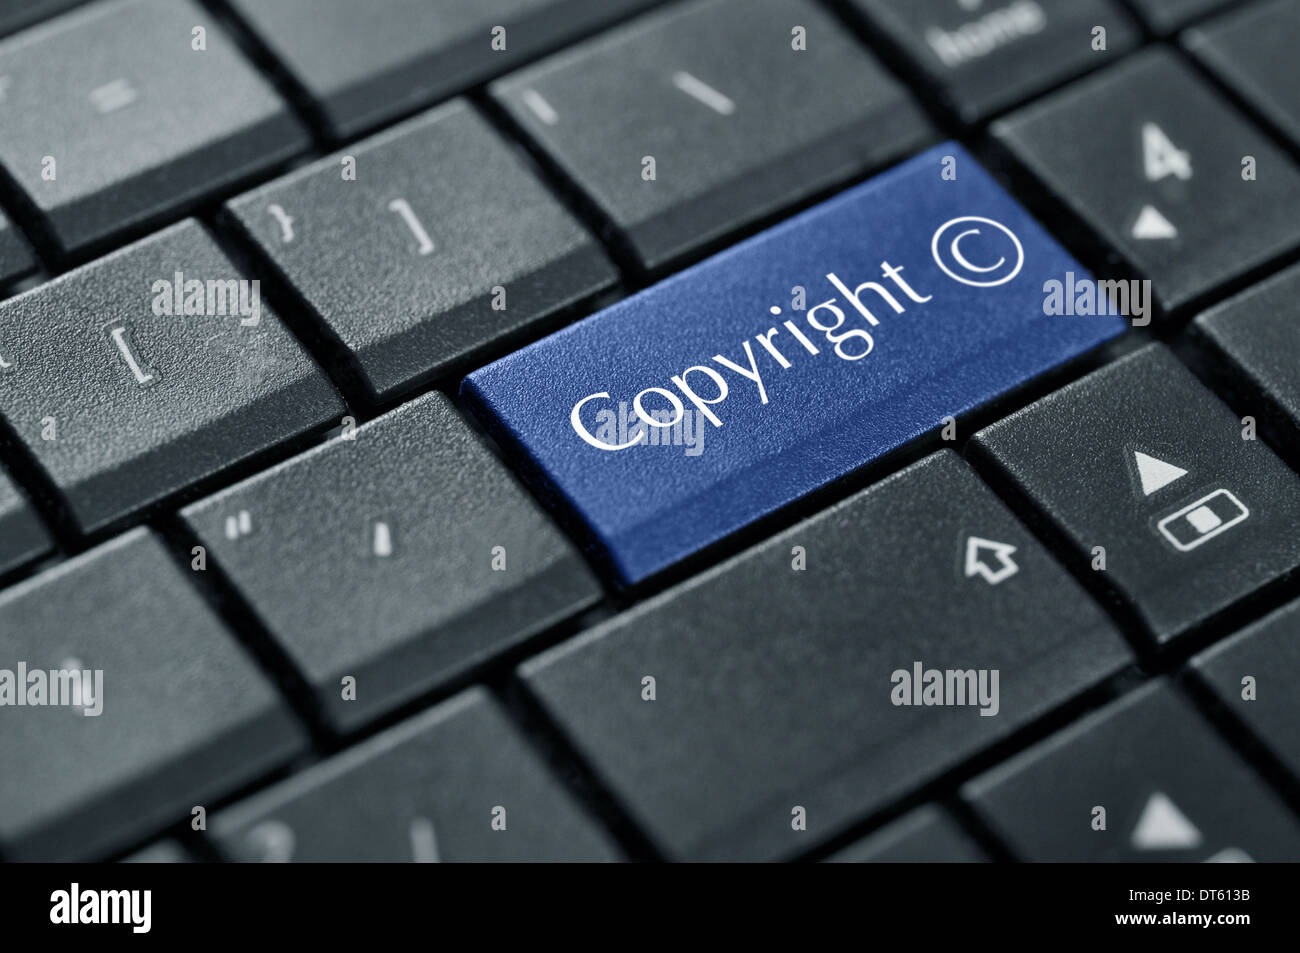 Computer keyboard with copyright symbol closeup stock photo computer keyboard with copyright symbol closeup biocorpaavc Gallery